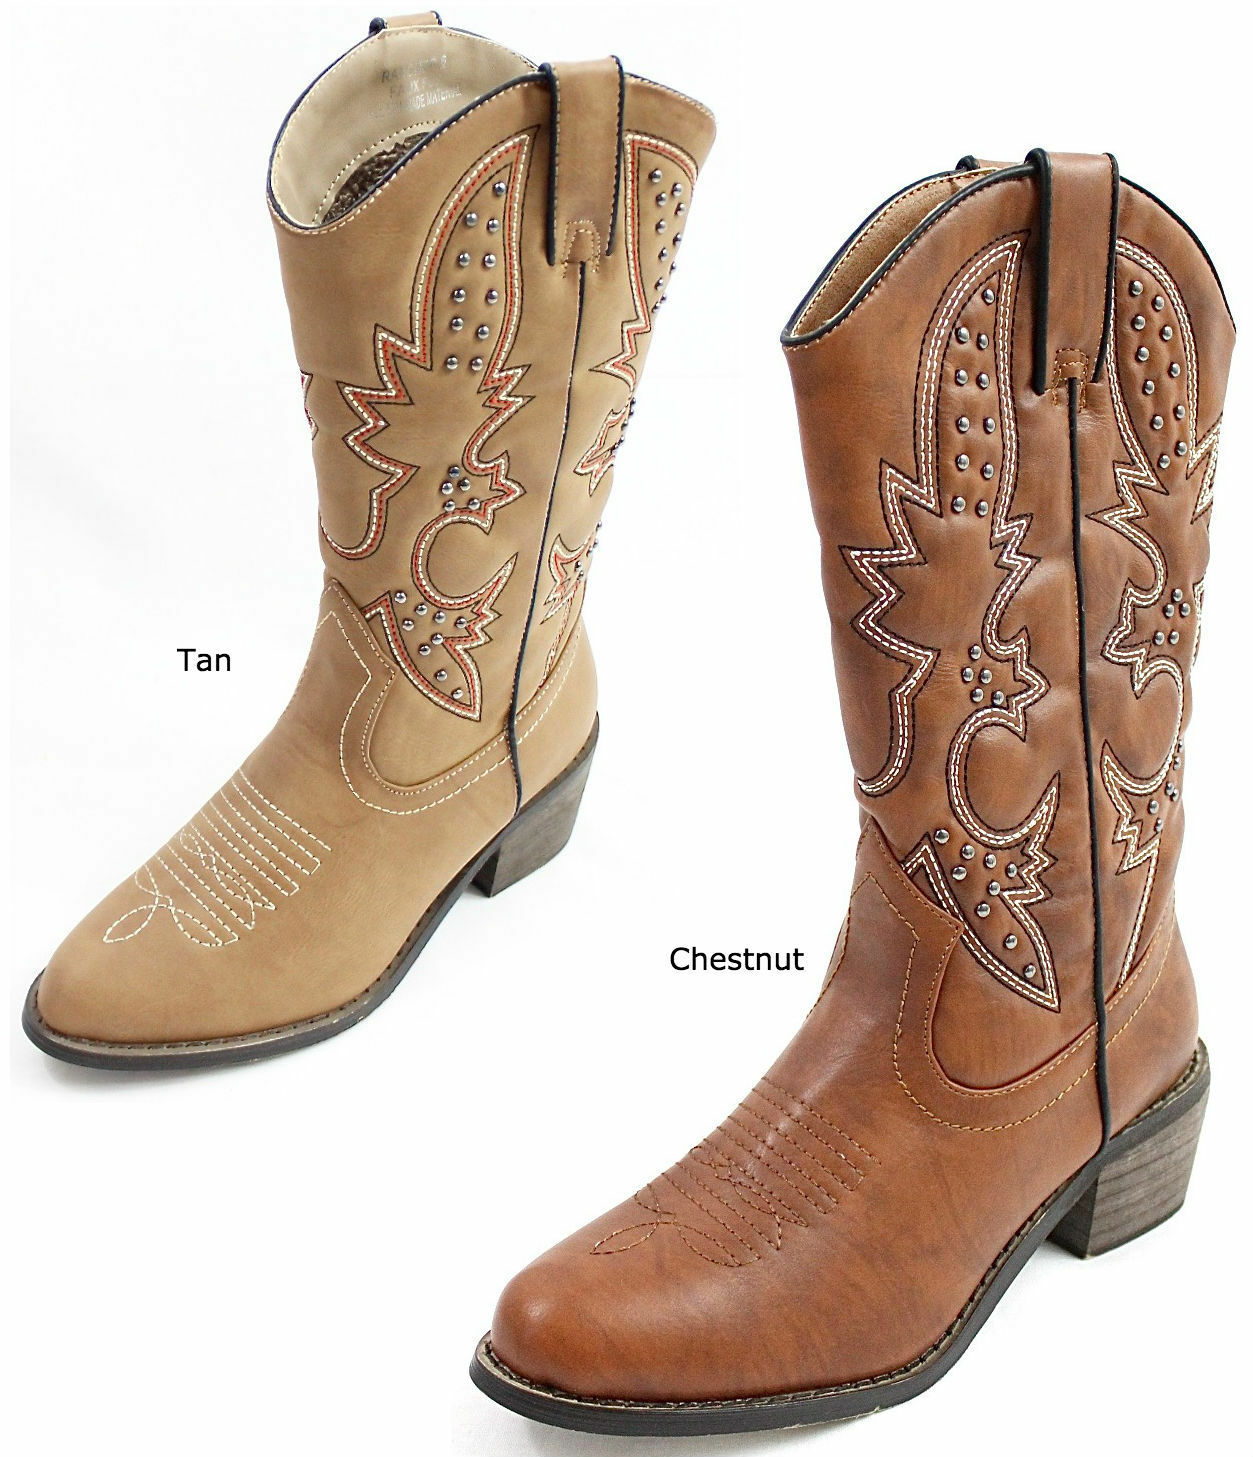 New Dollhouse Rancher Women's Embroidered Studded Western Cowboy Mid Calf Boots